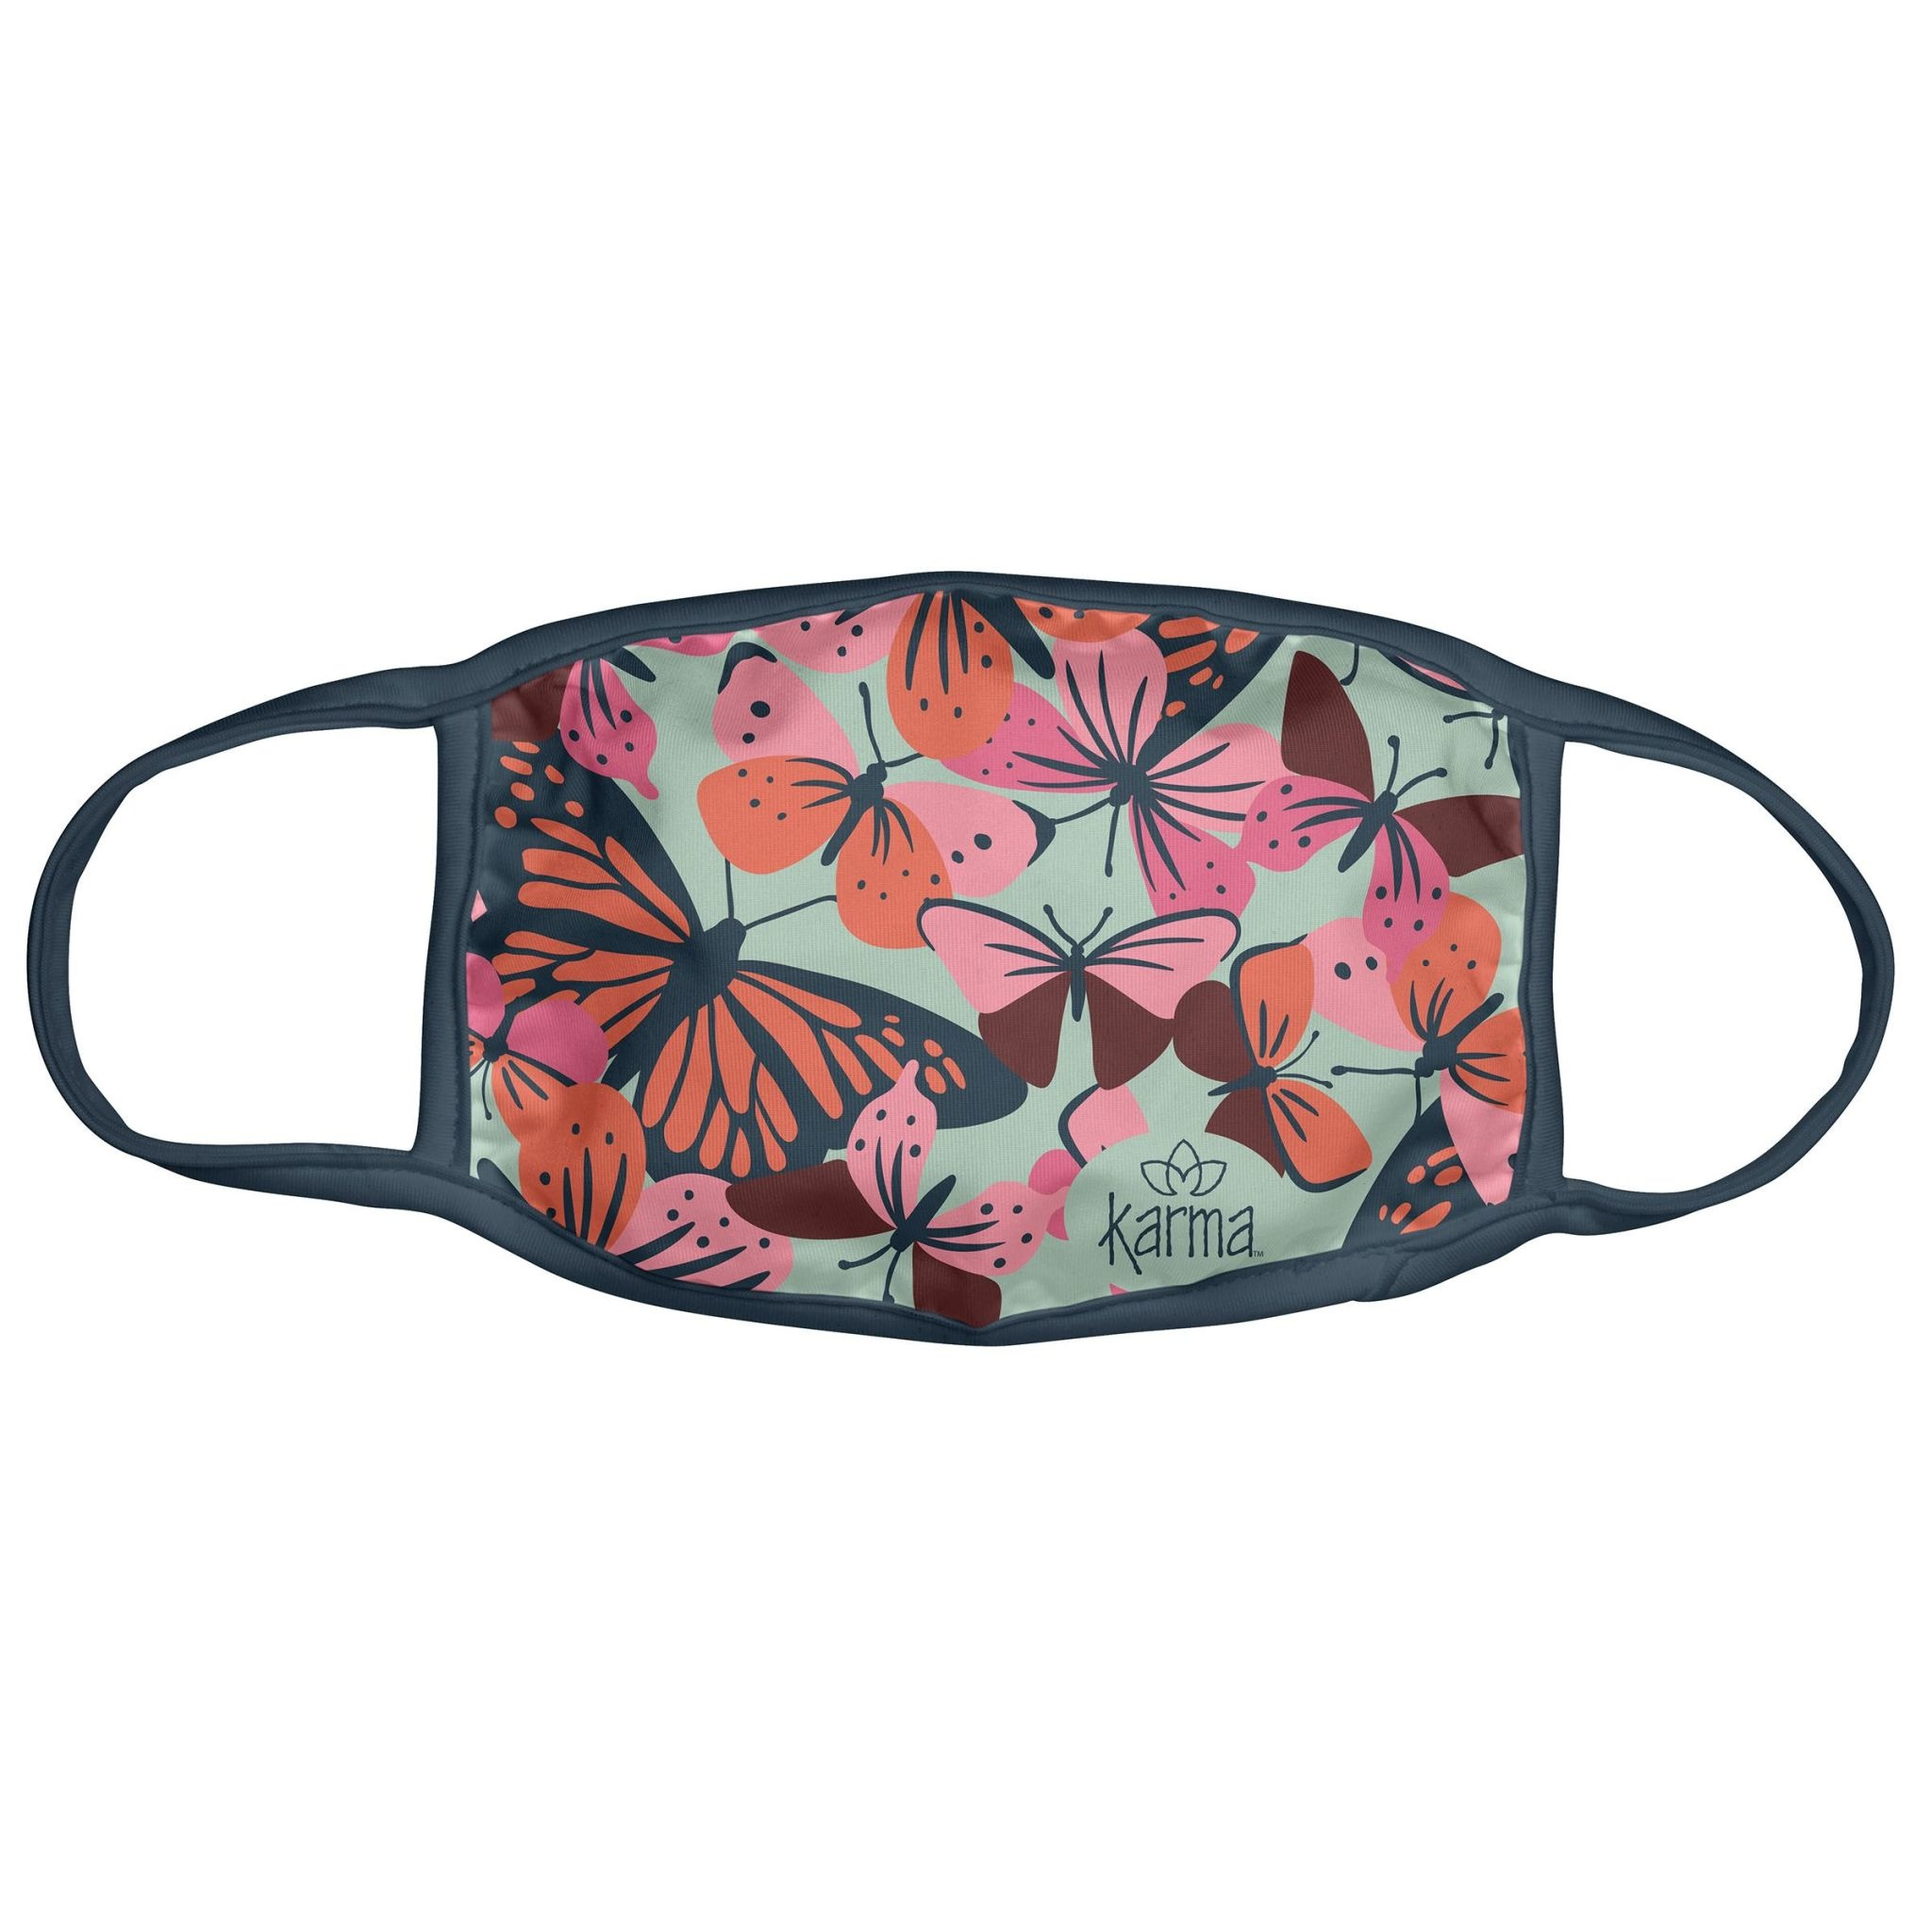 Karma Face Mask - Adult - Butterfly